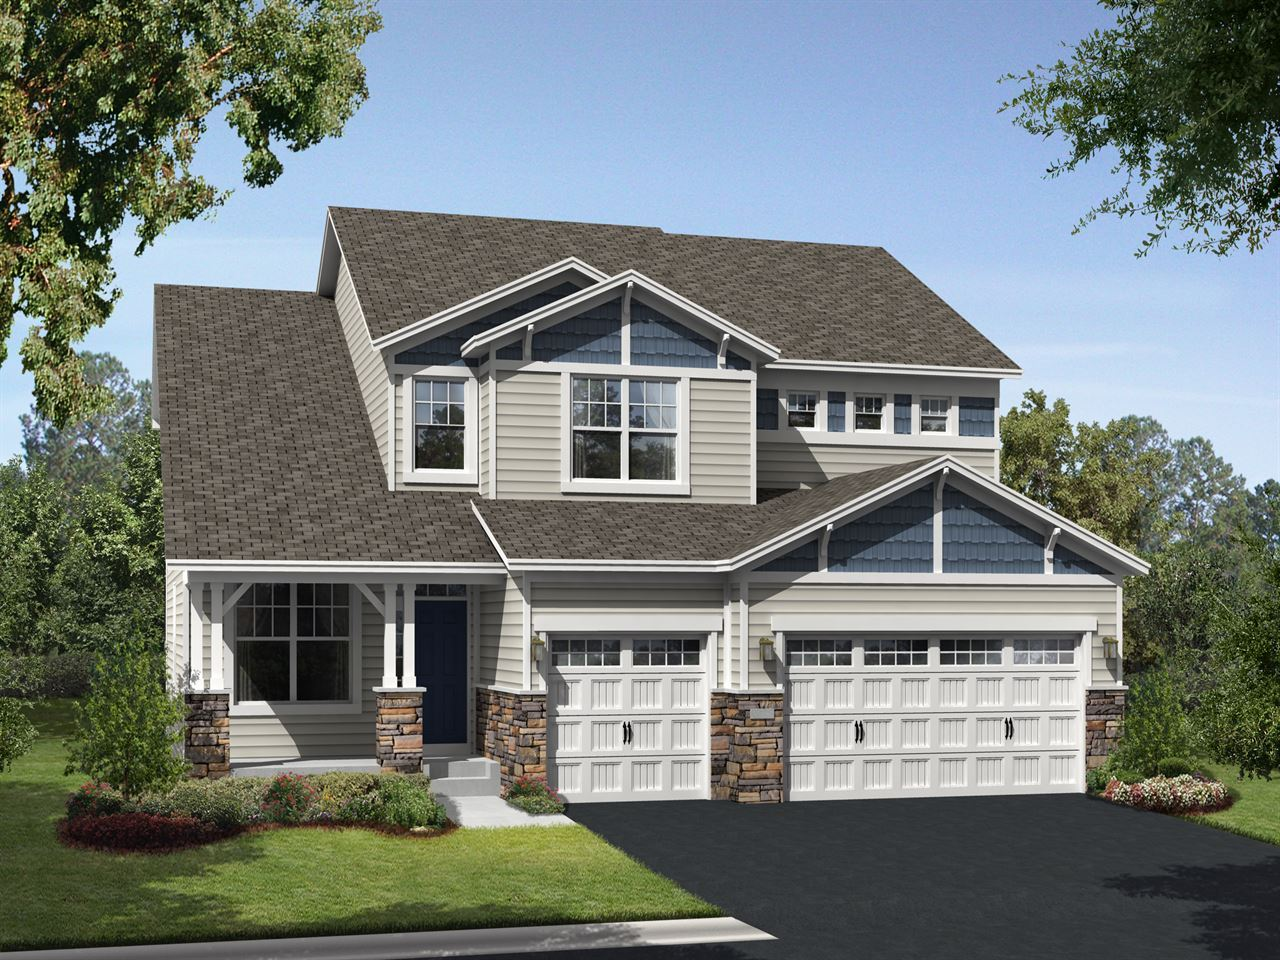 11460 Riverstone Trail, Woodbury, MN Homes & Land - Real Estate